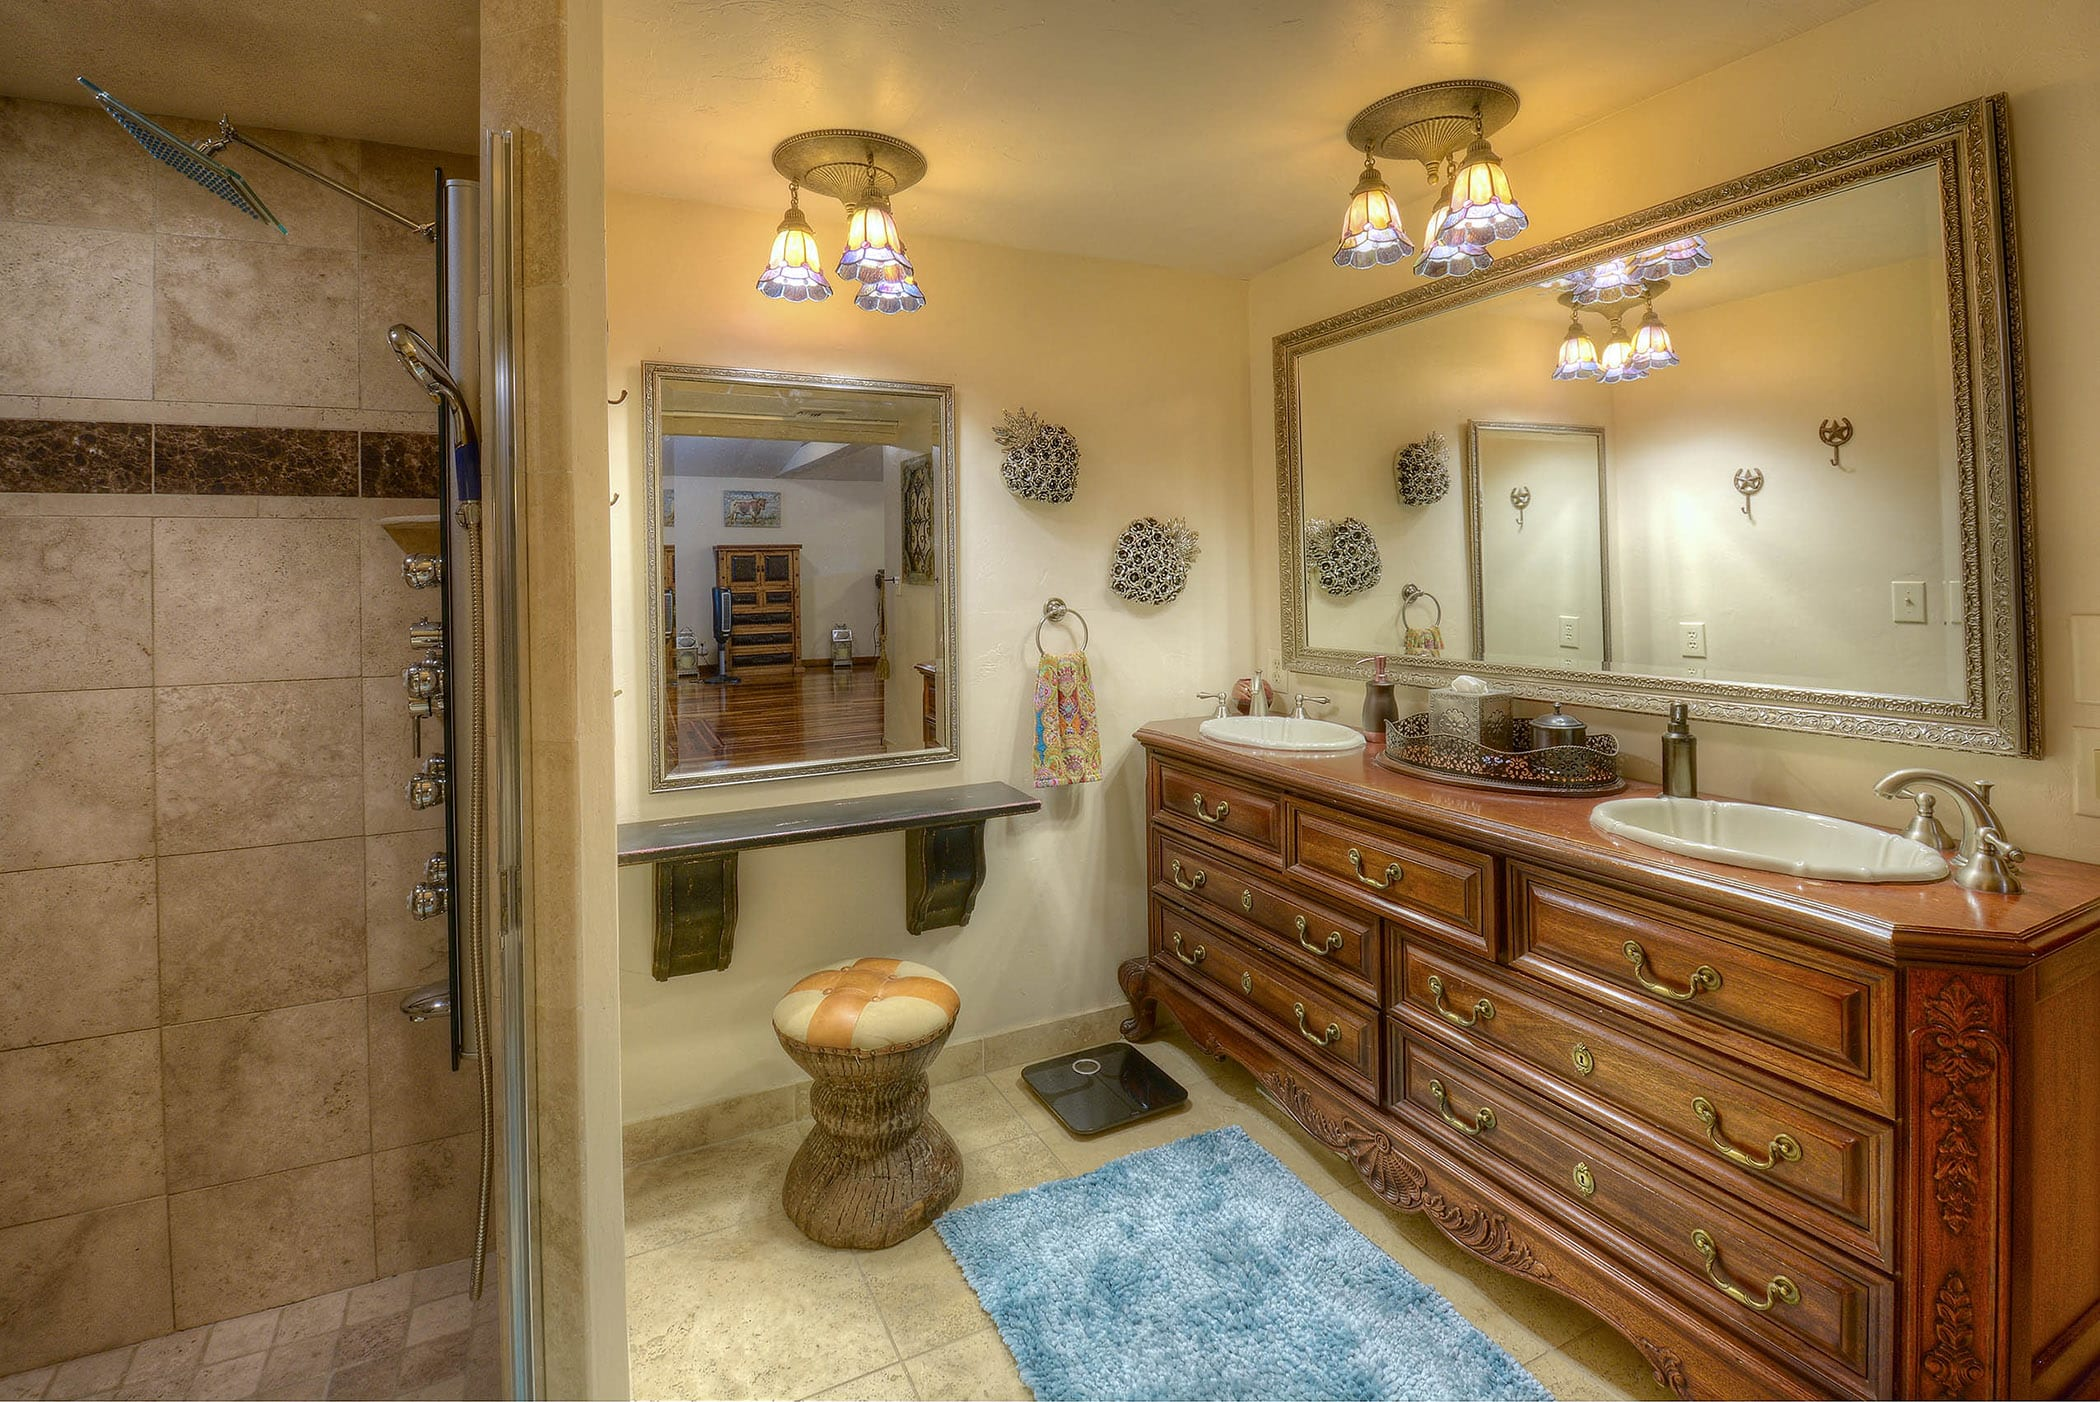 The en-suite bathroom is the perfect spot to get ready for the day.